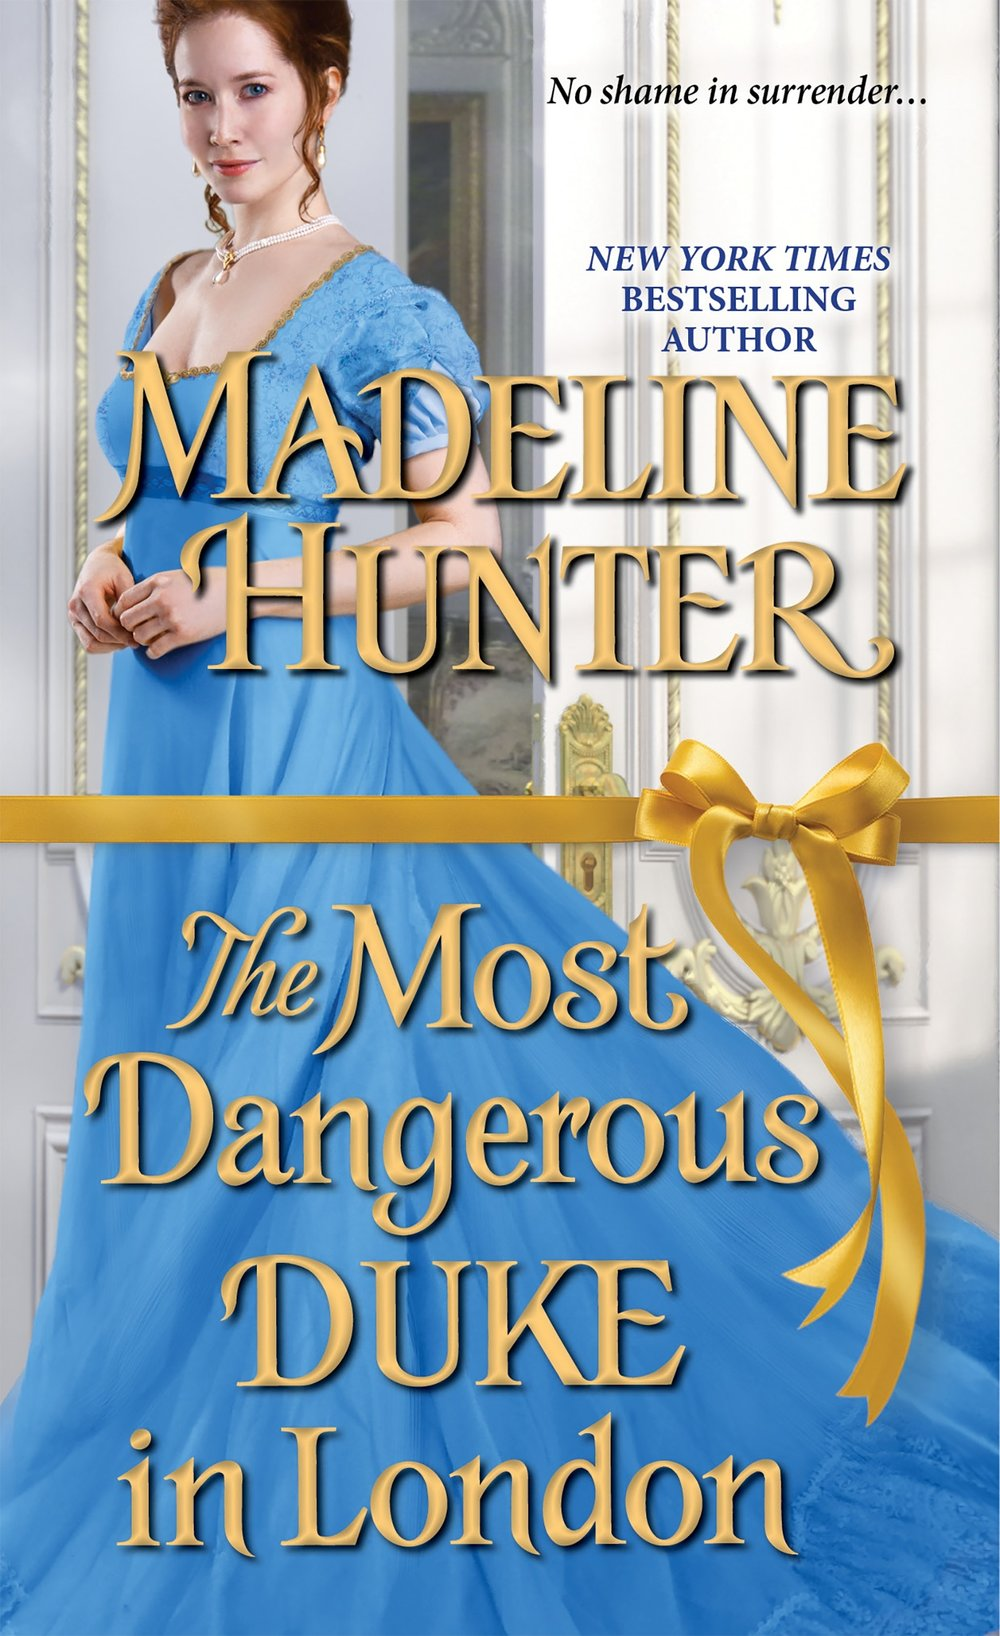 The Most Dangerous Duke in London , by Madeline Hunter